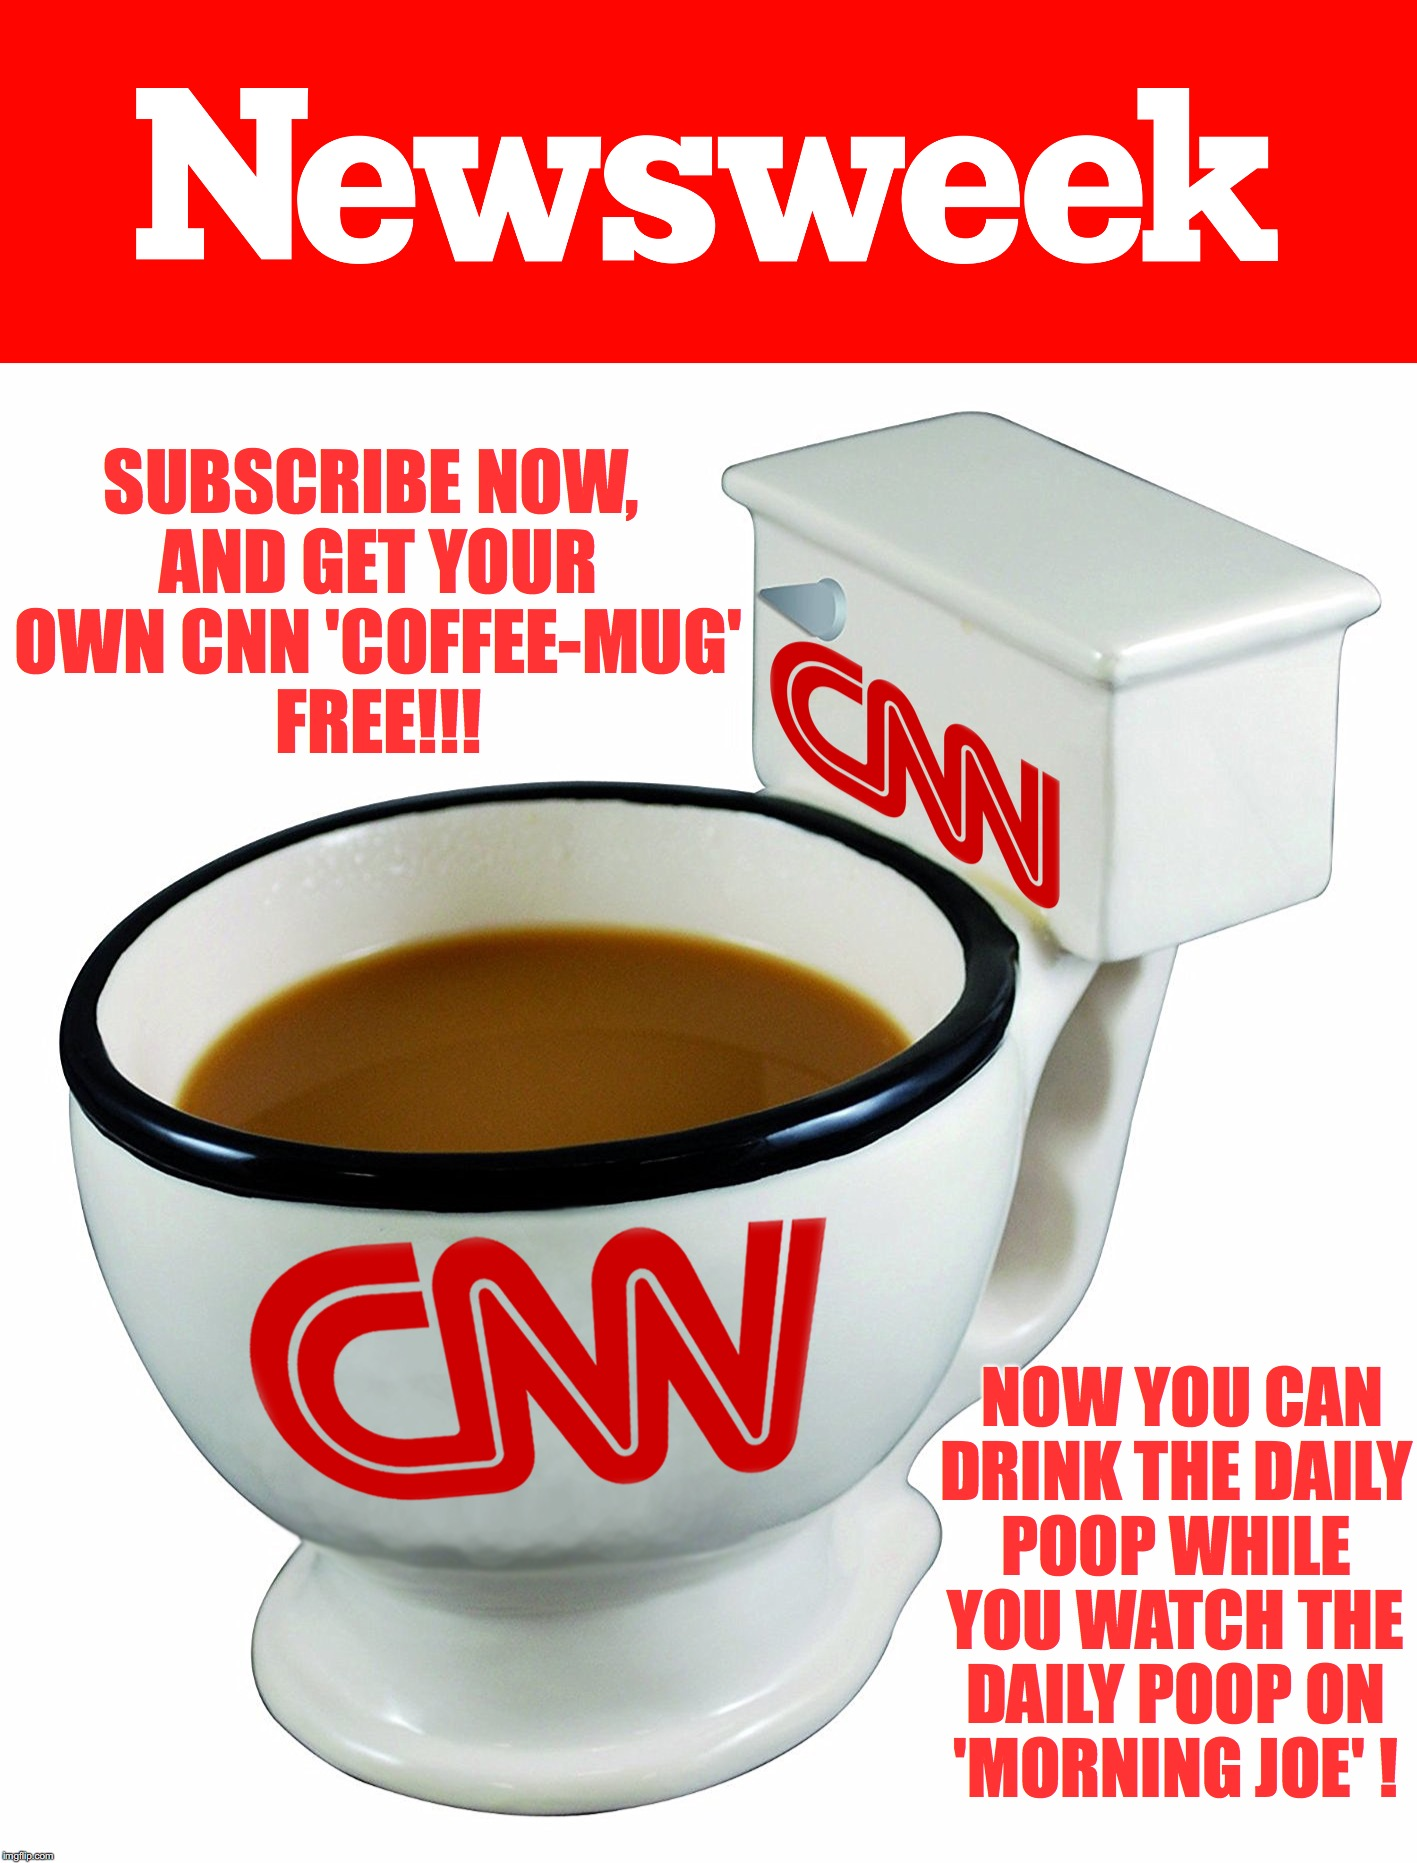 I better hurry before this deal goes 'down the drain' | SUBSCRIBE NOW, AND GET YOUR OWN CNN 'COFFEE-MUG' FREE!!! NOW YOU CAN DRINK THE DAILY POOP WHILE YOU WATCH THE DAILY POOP ON 'MORNING JOE' ! | image tagged in cnn fake news | made w/ Imgflip meme maker